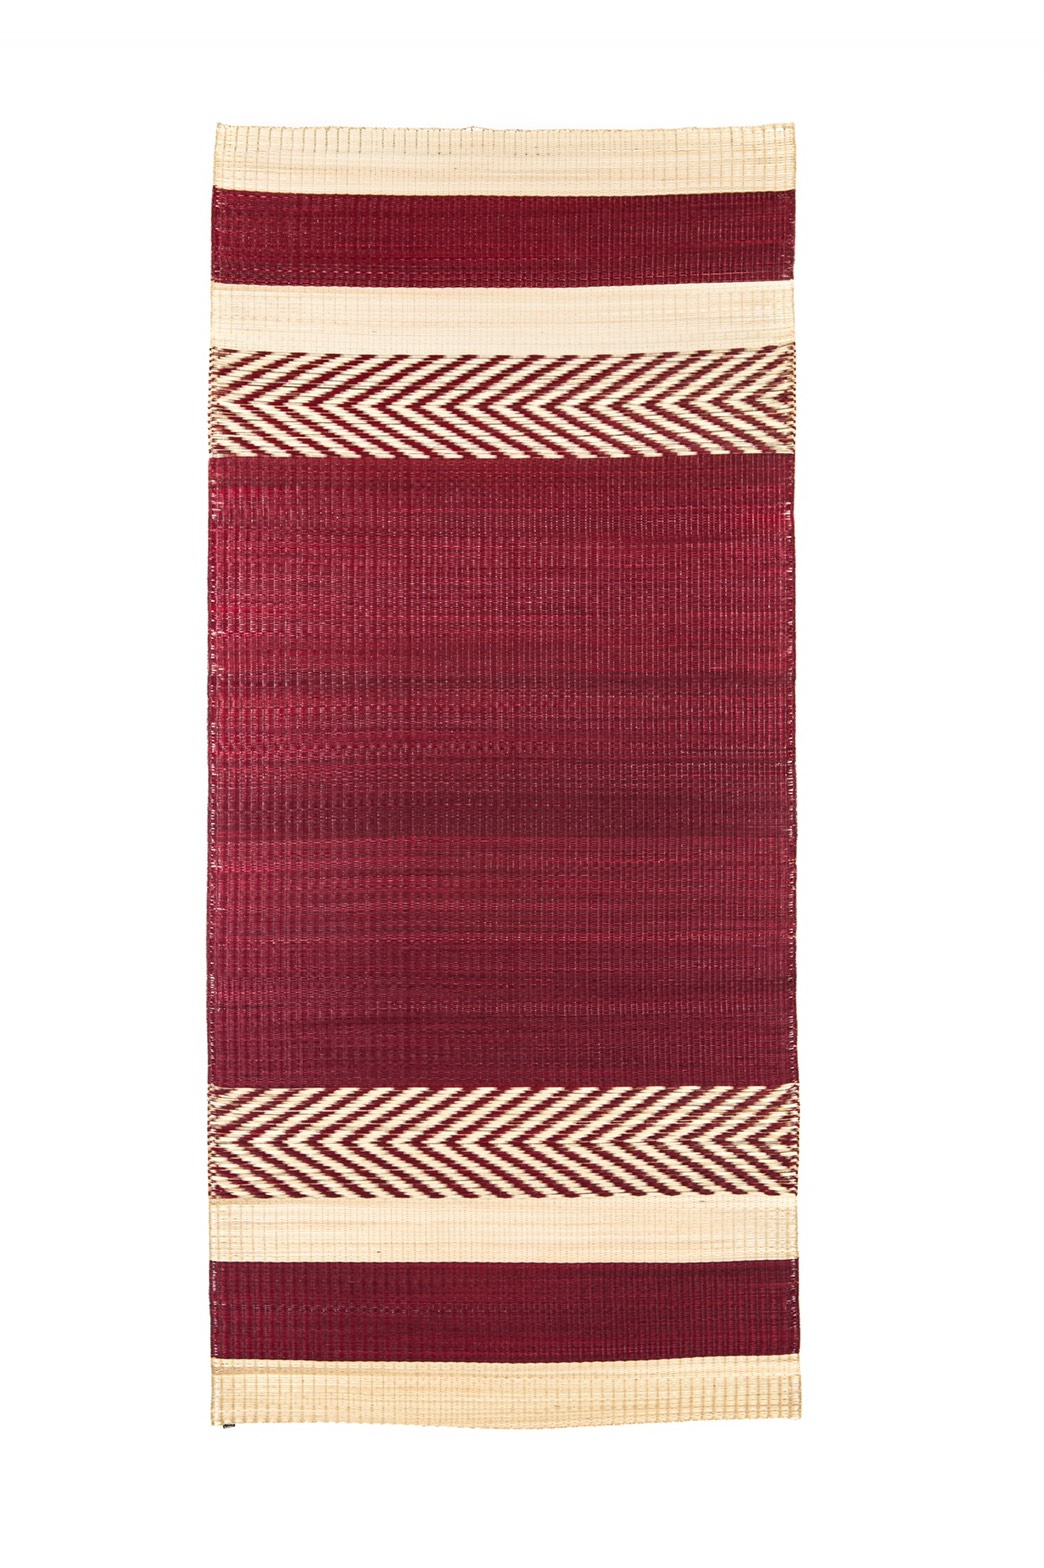 'Mini stripe' mat Red